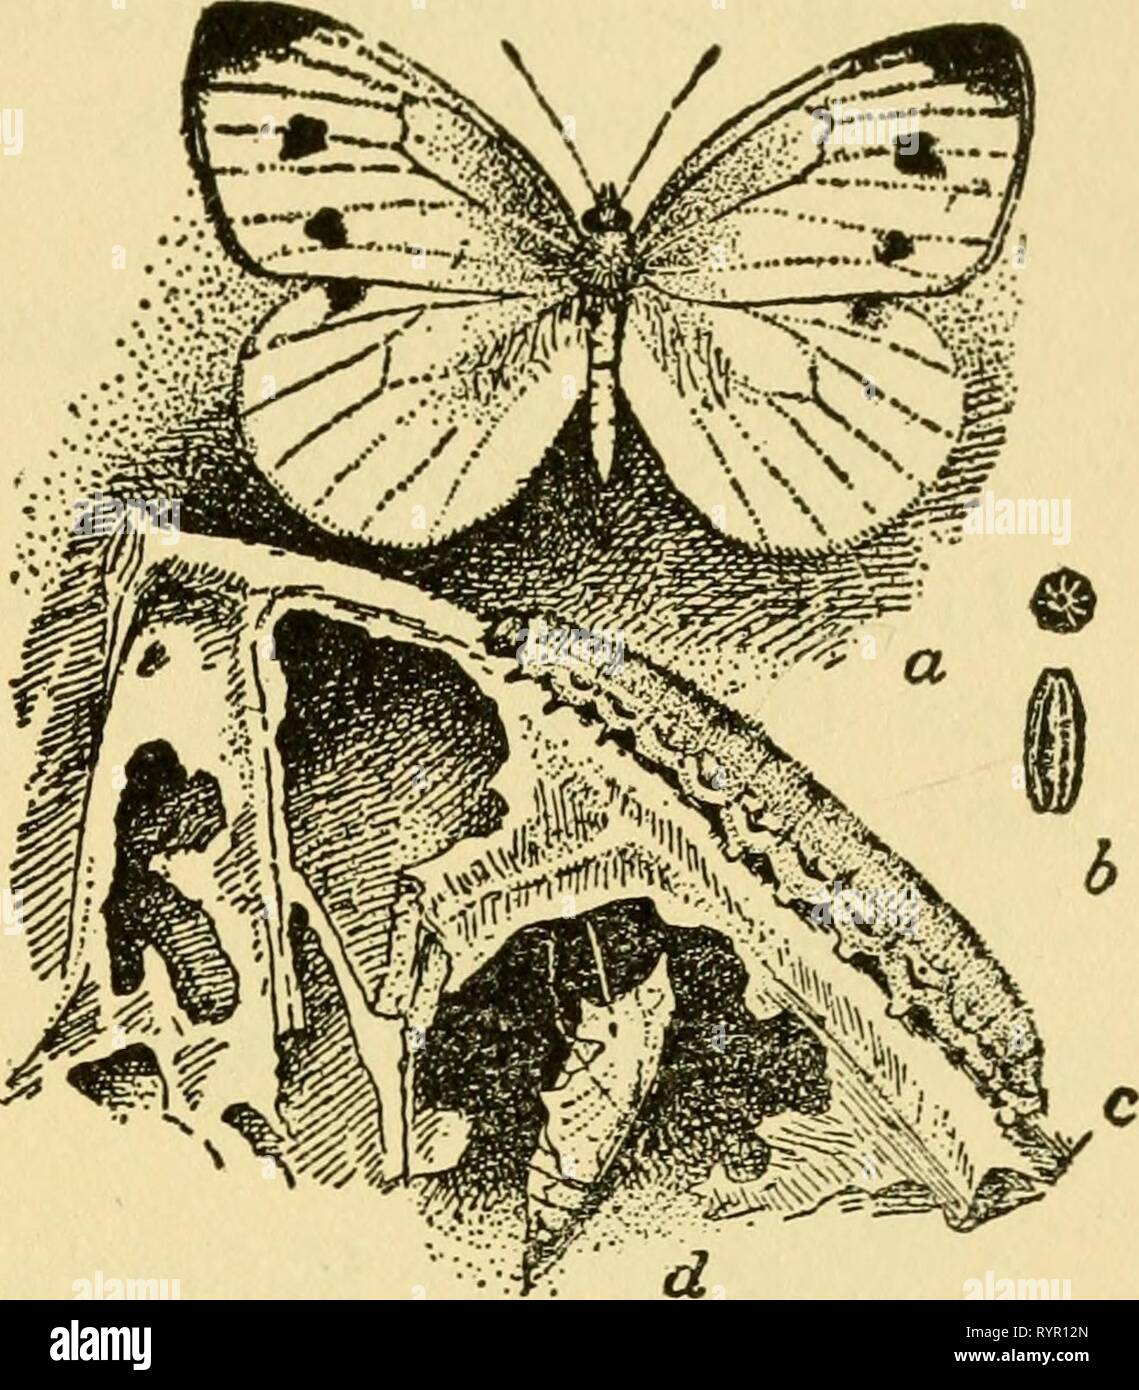 Elementary lessons on insects (1928) Elementary lessons on insects . elementarylesson00need Year: 1928  LEPIDOPTERA 111    Fig. 45.—The cabbage butterfly: a, the adult; b, end and side views of two eggs, enlarged; c, larva; d, pupa. From U. S. Dept. of Agriculture. 3. Collect miscellaneous adult butterflies from the flowers by day. 4. Collect miscellaneous moths at lights by night. 5. If dried specimens are to be used keep them over night in a relaxing jar. 6. Collect moths and caterpillars of some of the abundant sorts, such as spanworms or loopers, hornworms or sphinxes, and garden cutworms. - Stock Image